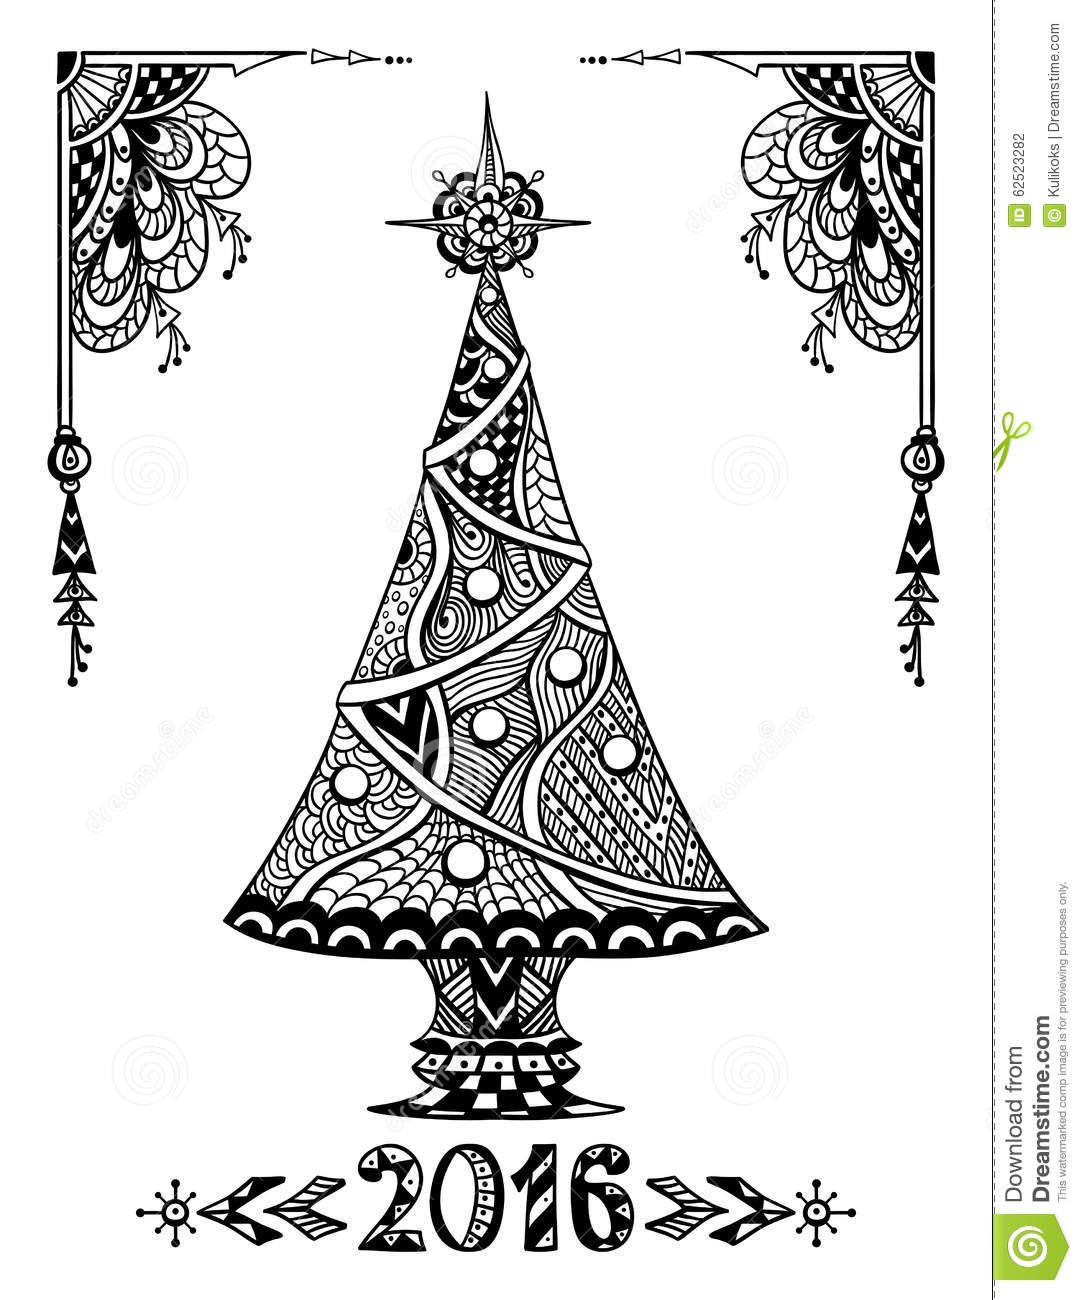 Christmas Tree In Zen Doodle Style Black On White Stock